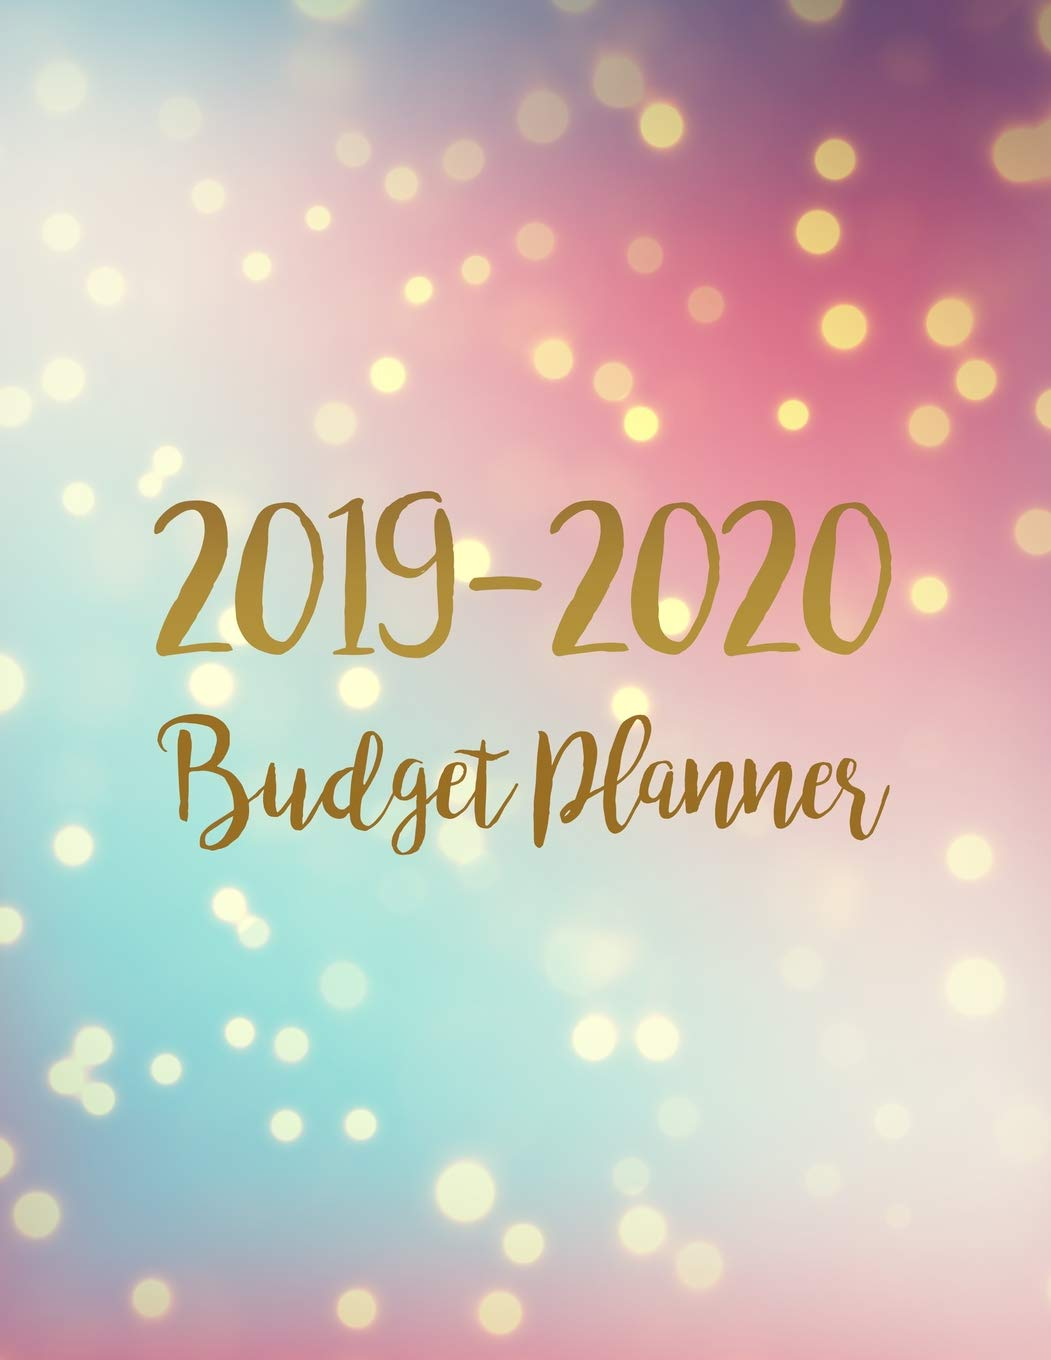 Uri Fall 2020 Schedule.Amazon Com Budget Planner 2019 2020 Two Year Daily Weekly